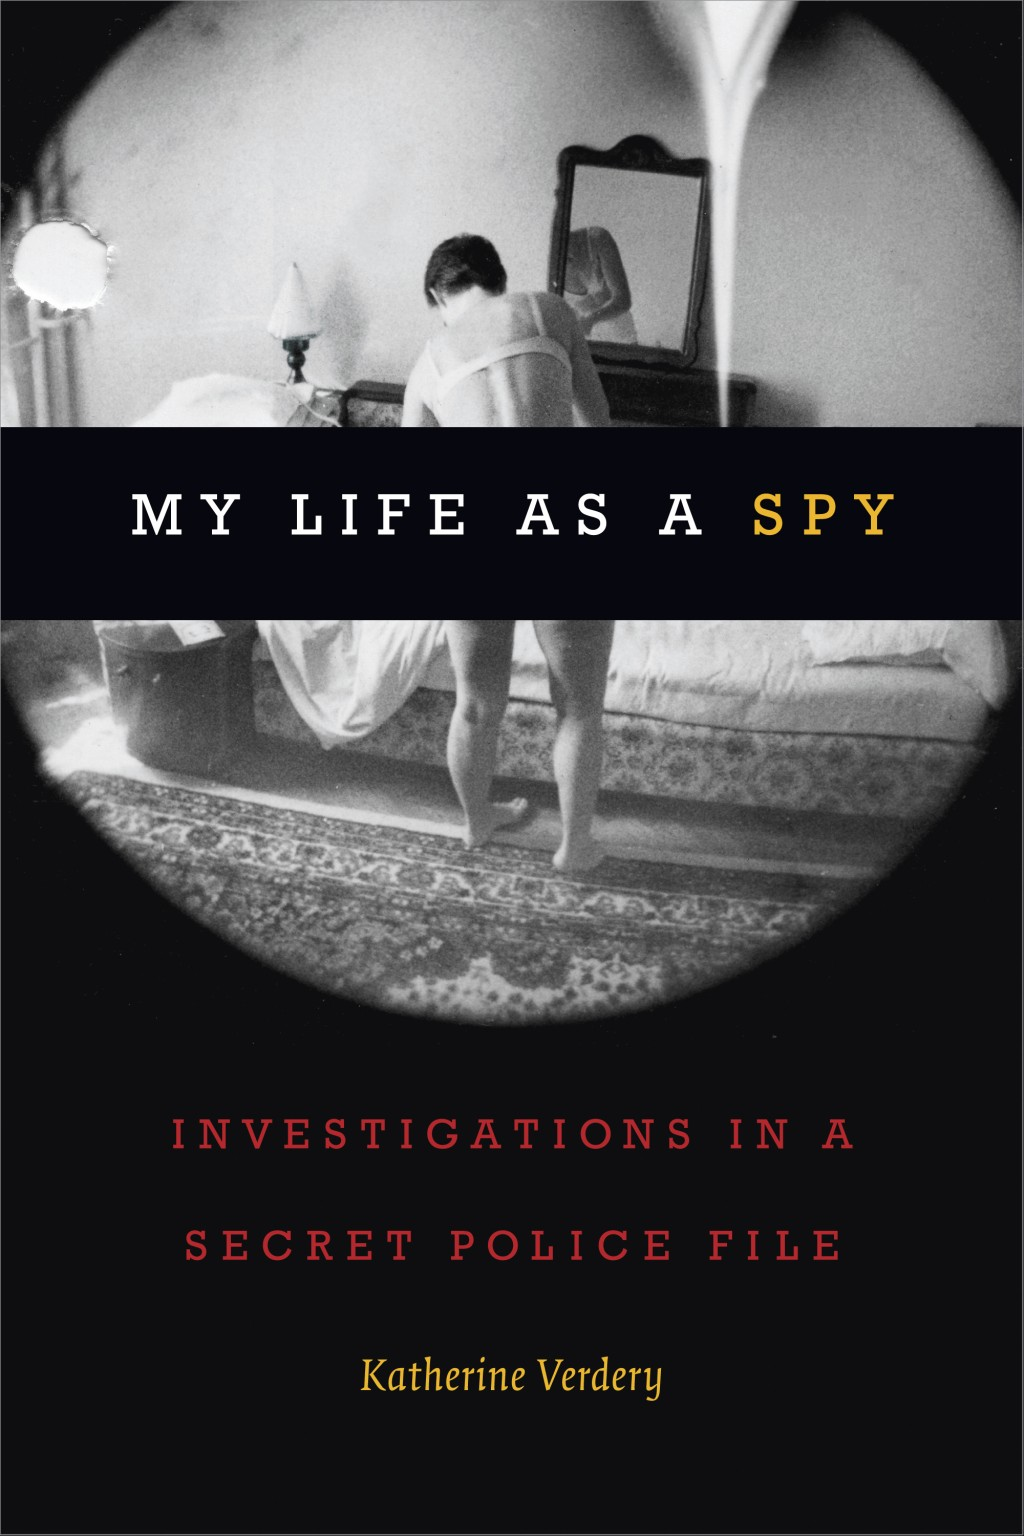 """This undated image provided by Duke University Press shows the cover of the memoir """"My Life as a Spy: Investigations in a Secret Police File,"""" by Kath..."""